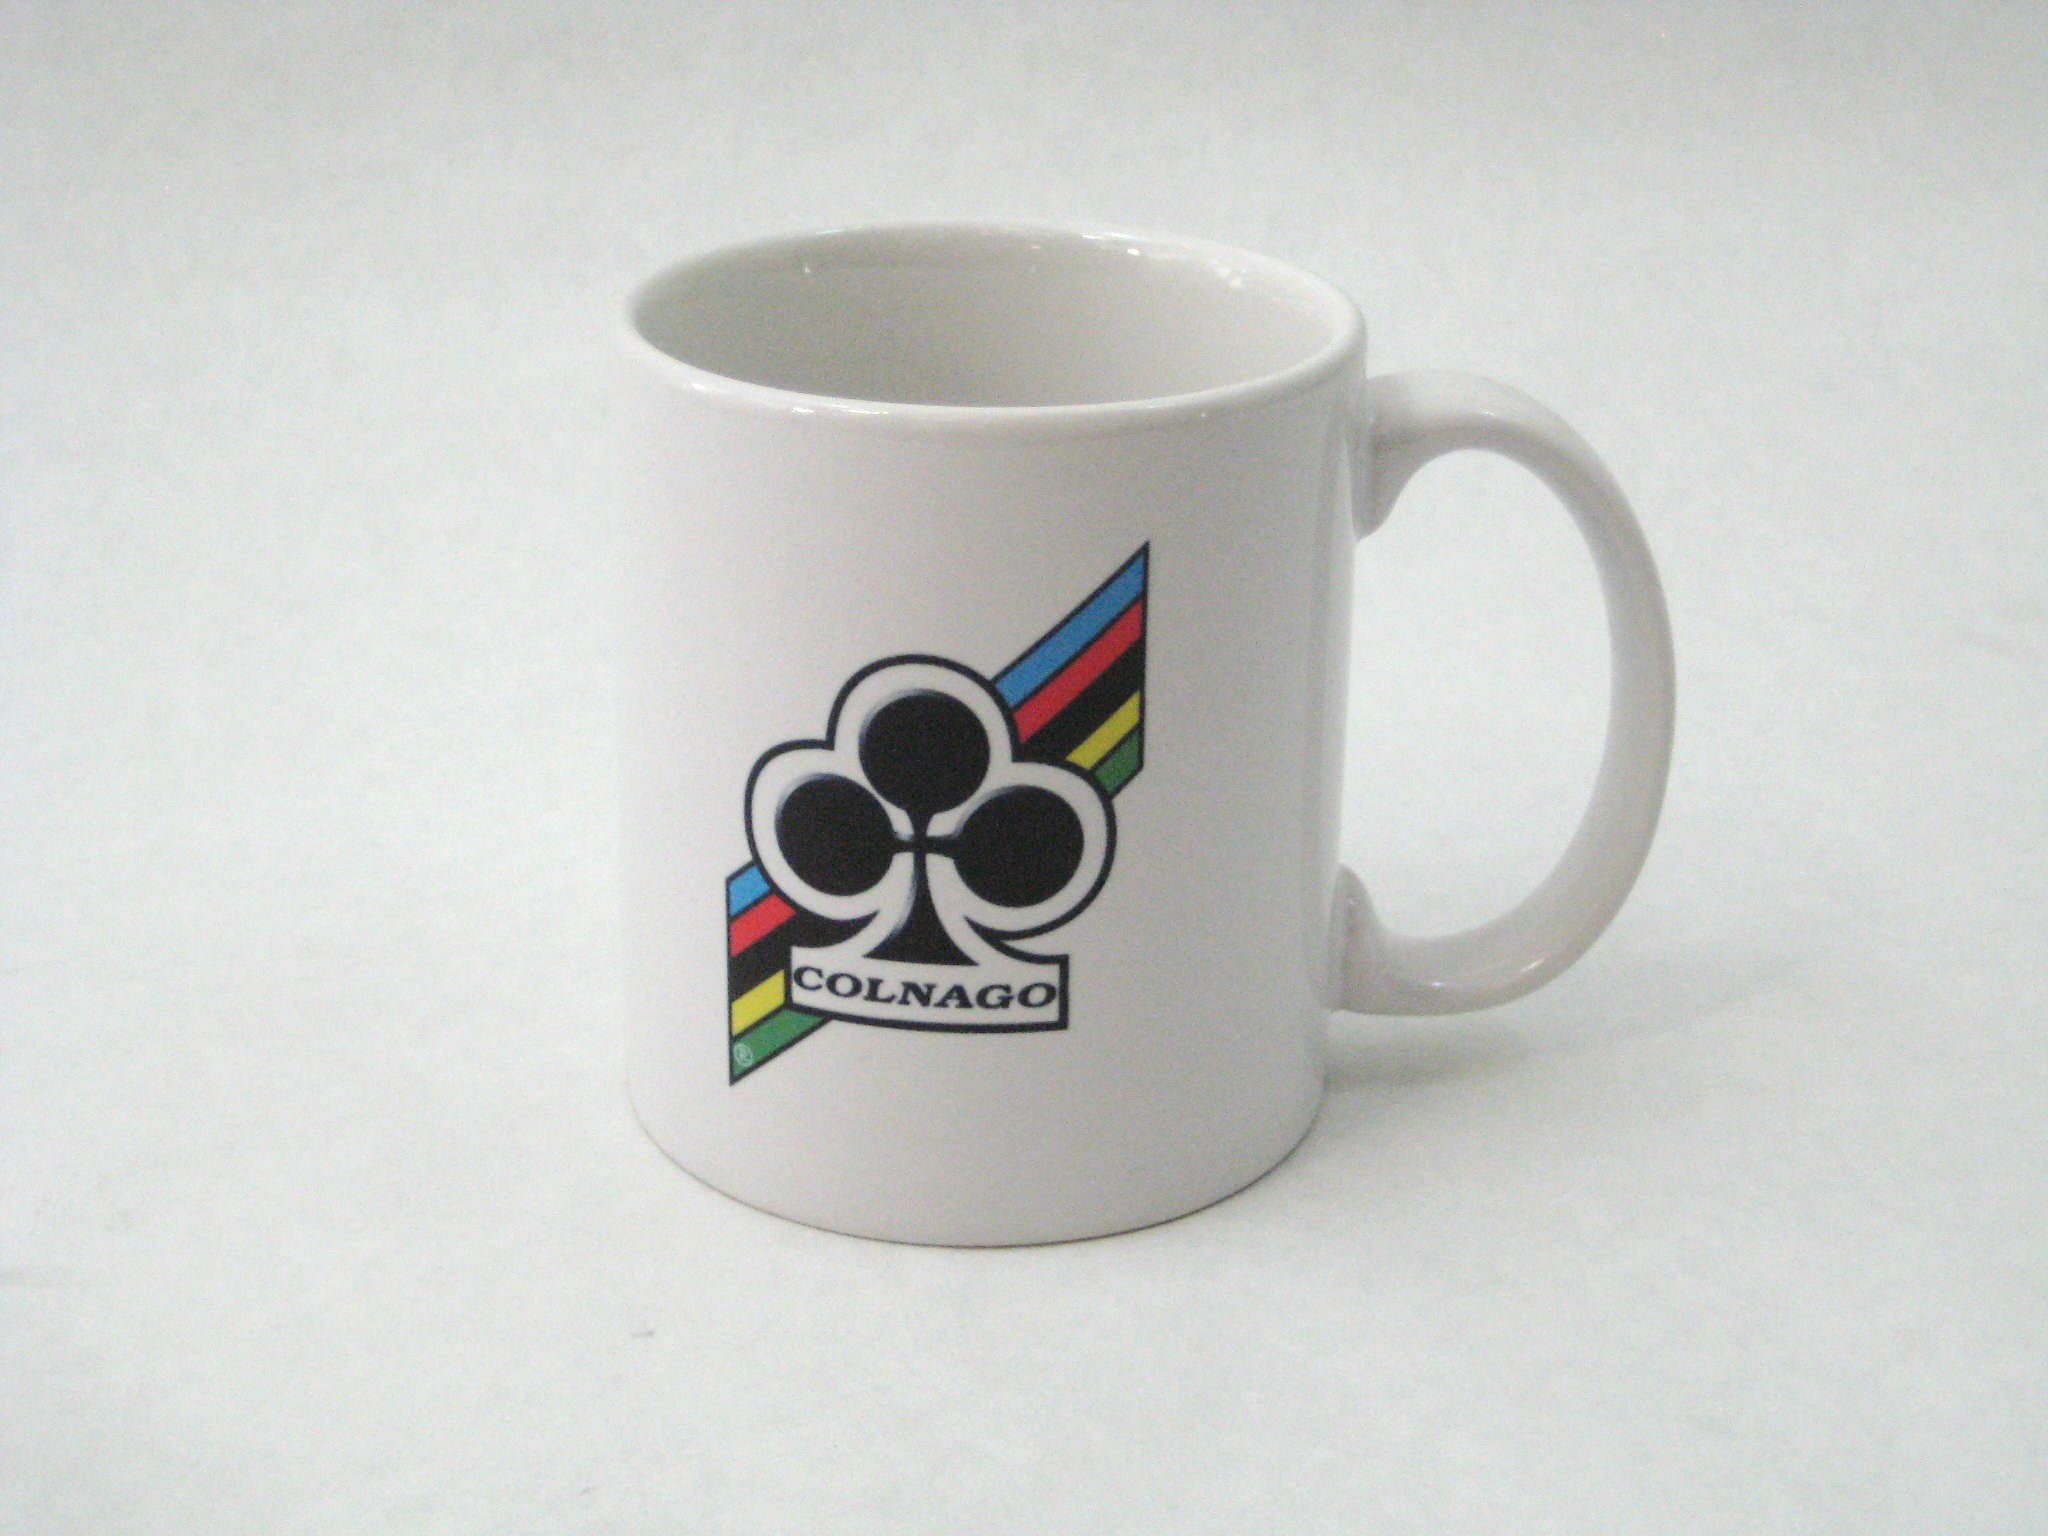 colnago coffee mugs for sale at classic cycle classic